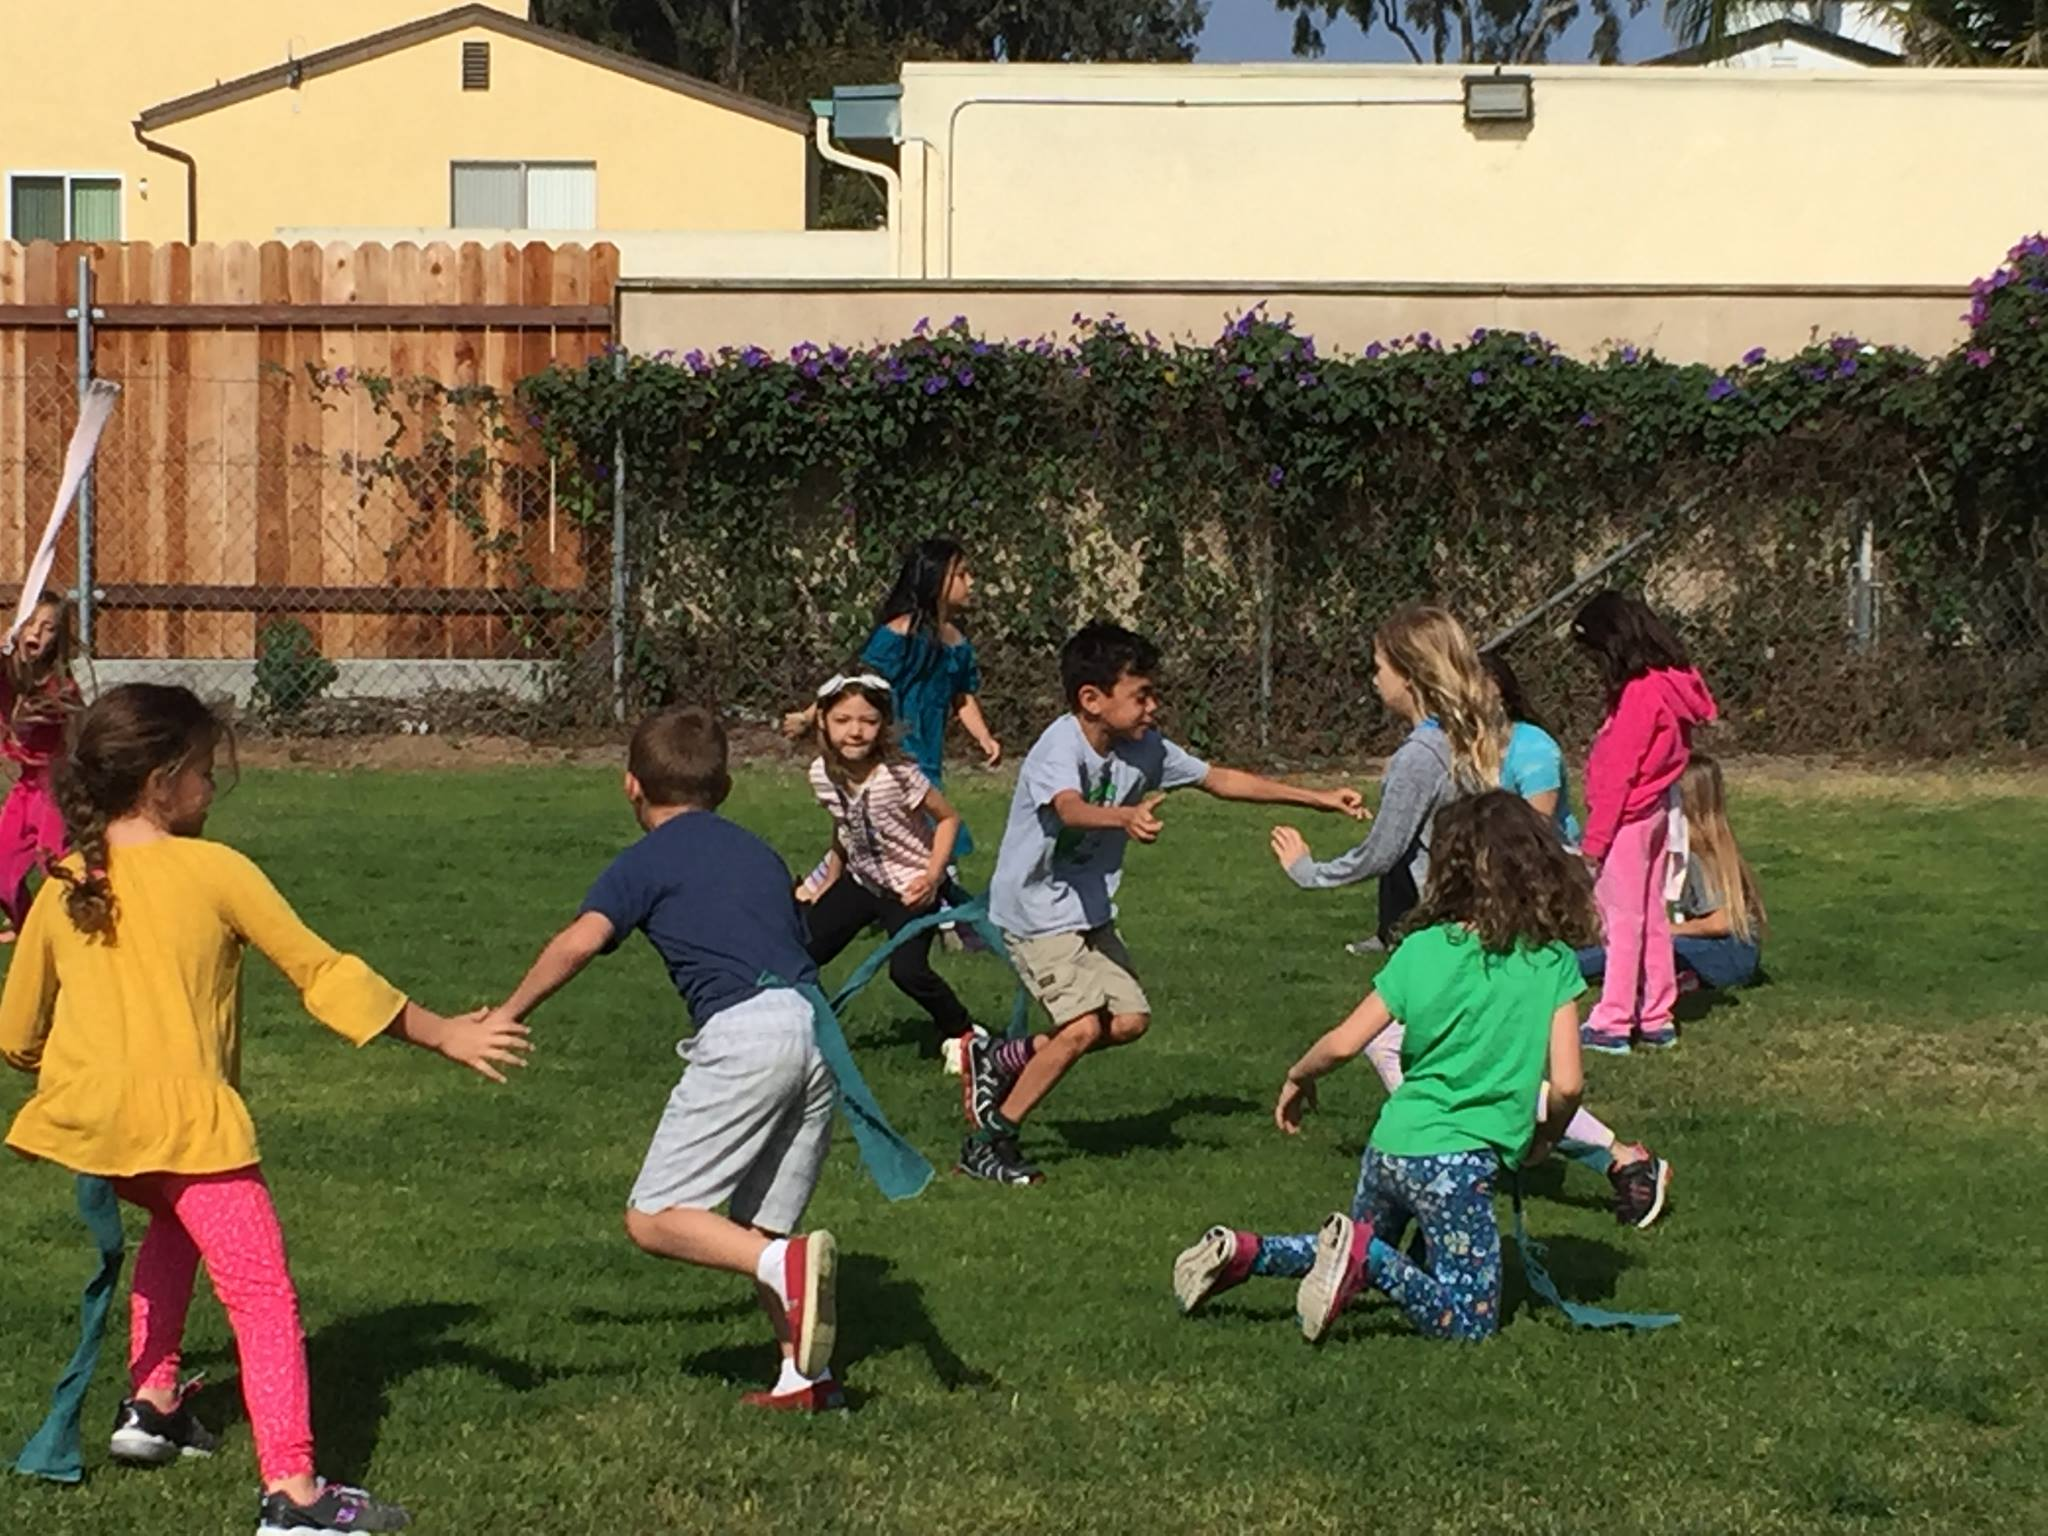 - GamesPhysical exercise through cooperative games. Learning gross motor skills, balance, and team work